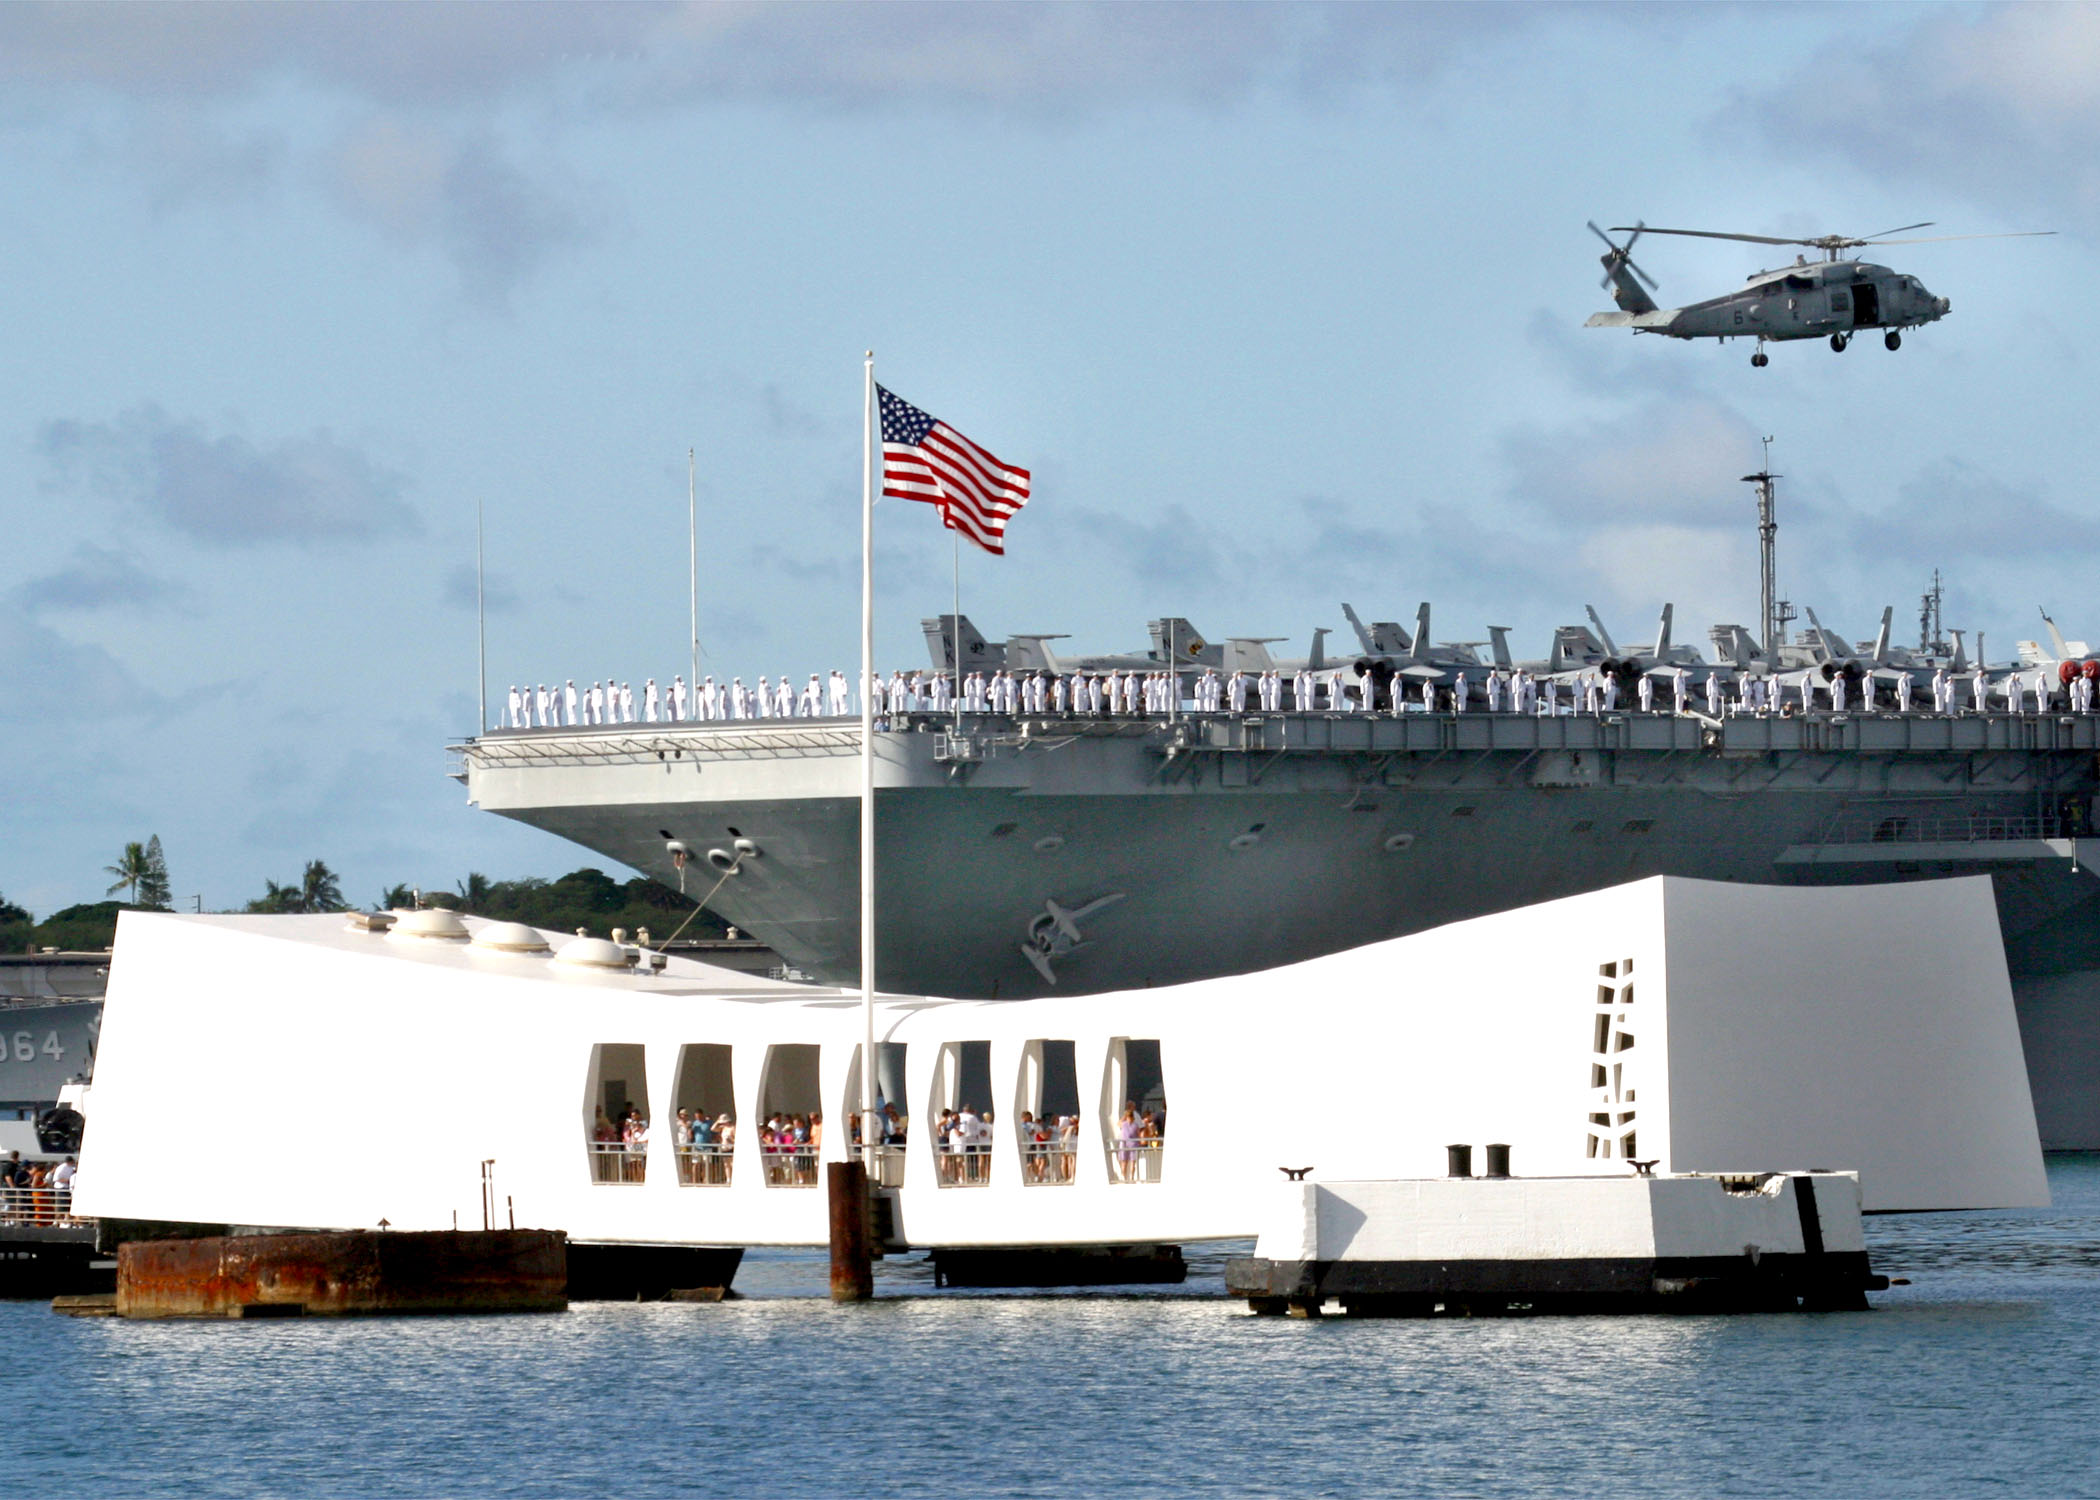 US_Navy_020801-N-3228G-001_USS_Abraham_Lincoln_(CVN_72)_passes_the_Arizona_Memorial_in_Pearl_Harbor,_Hawaii.jpg (2100×1500)